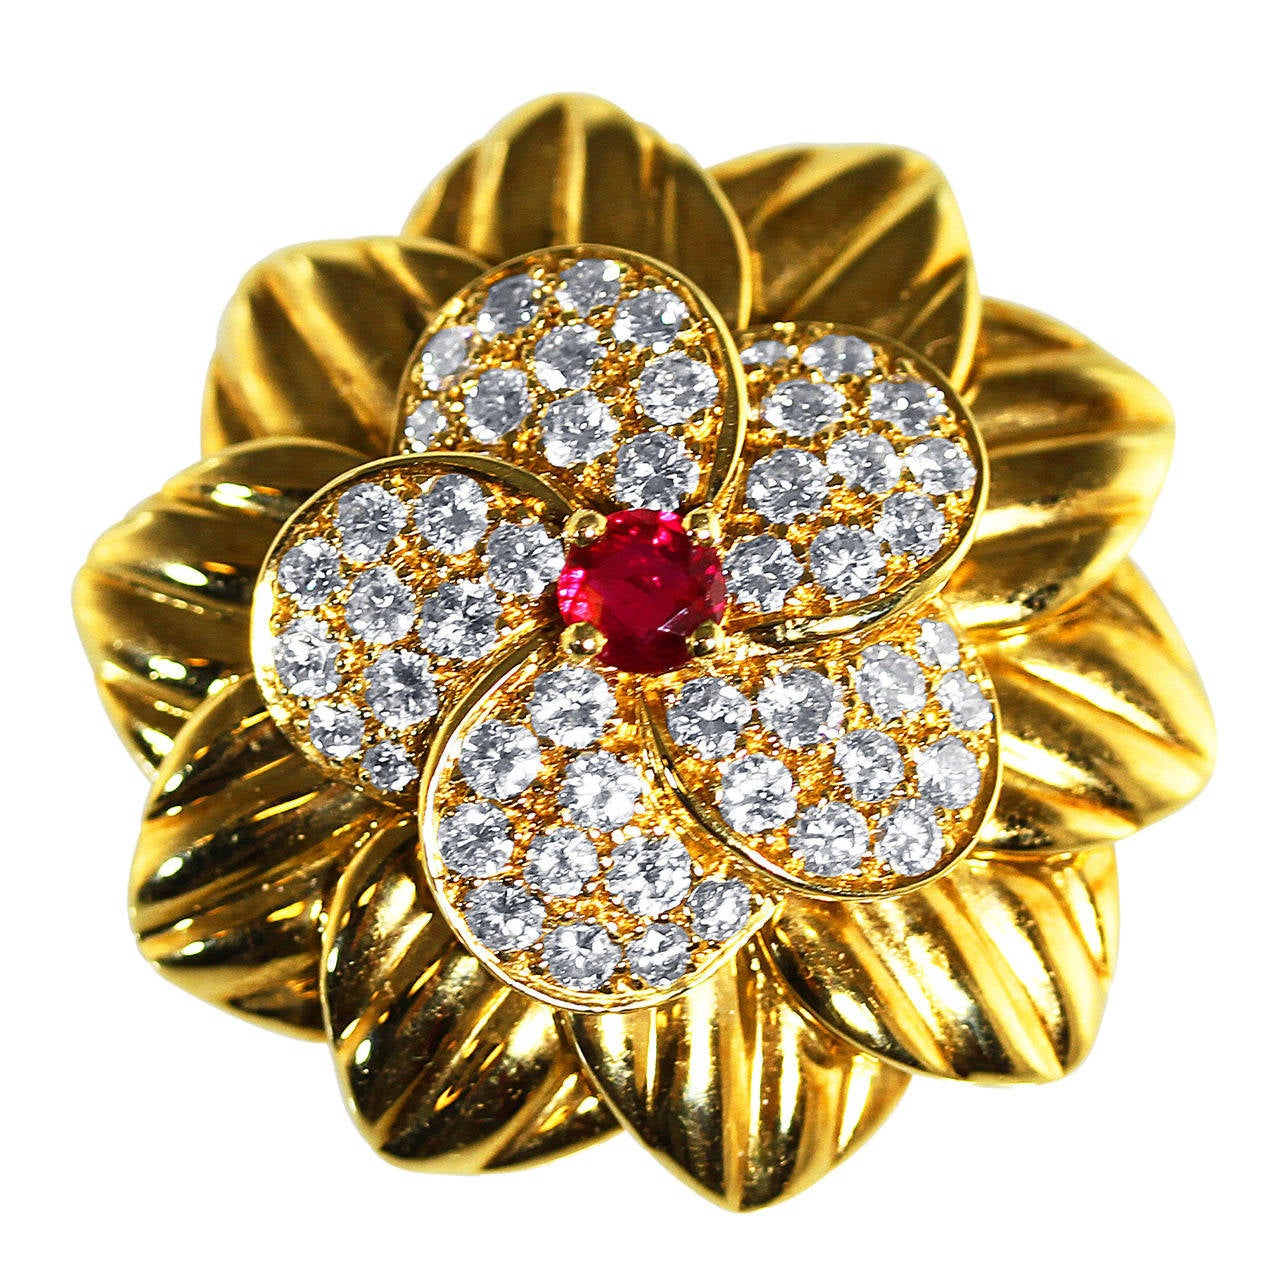 Van Cleef And Arpels Ruby Diamond Gold Brooch At 1stdibs